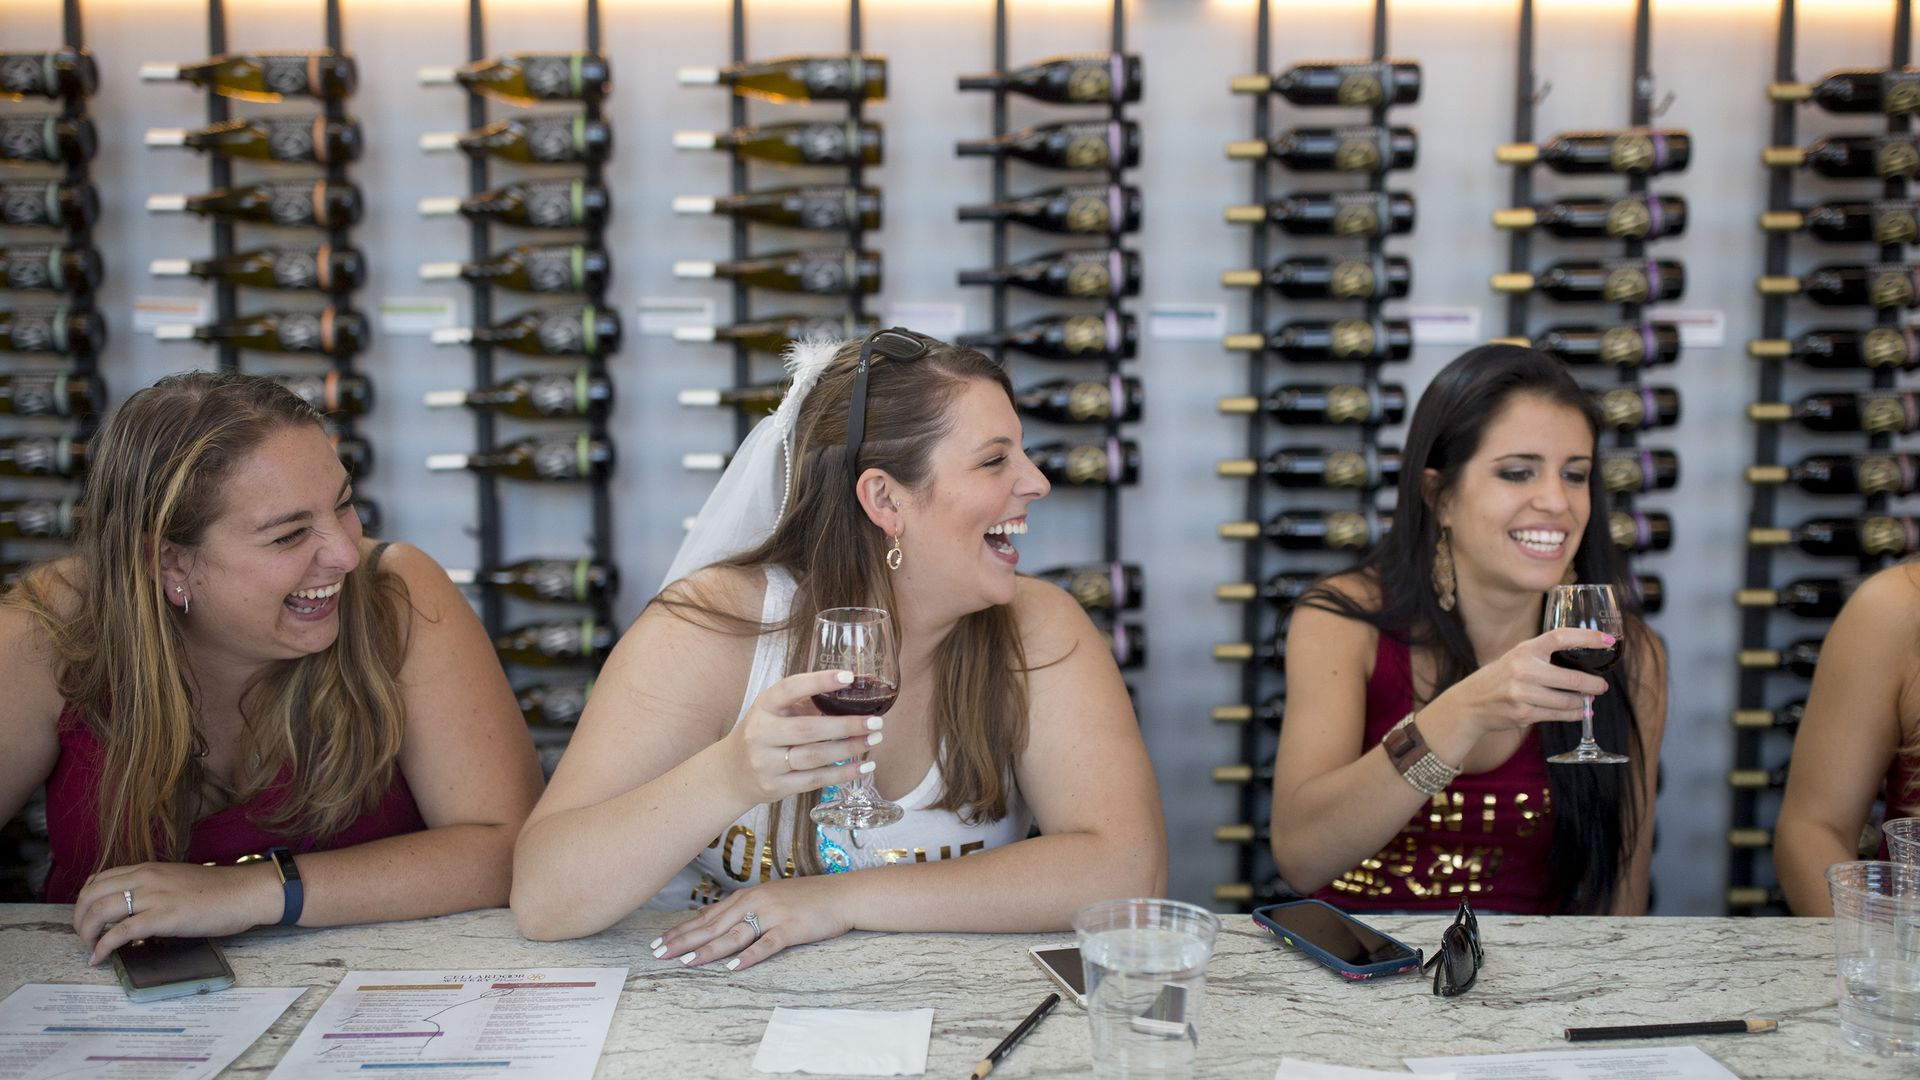 Women drink wine at a bar during a bachelorette party